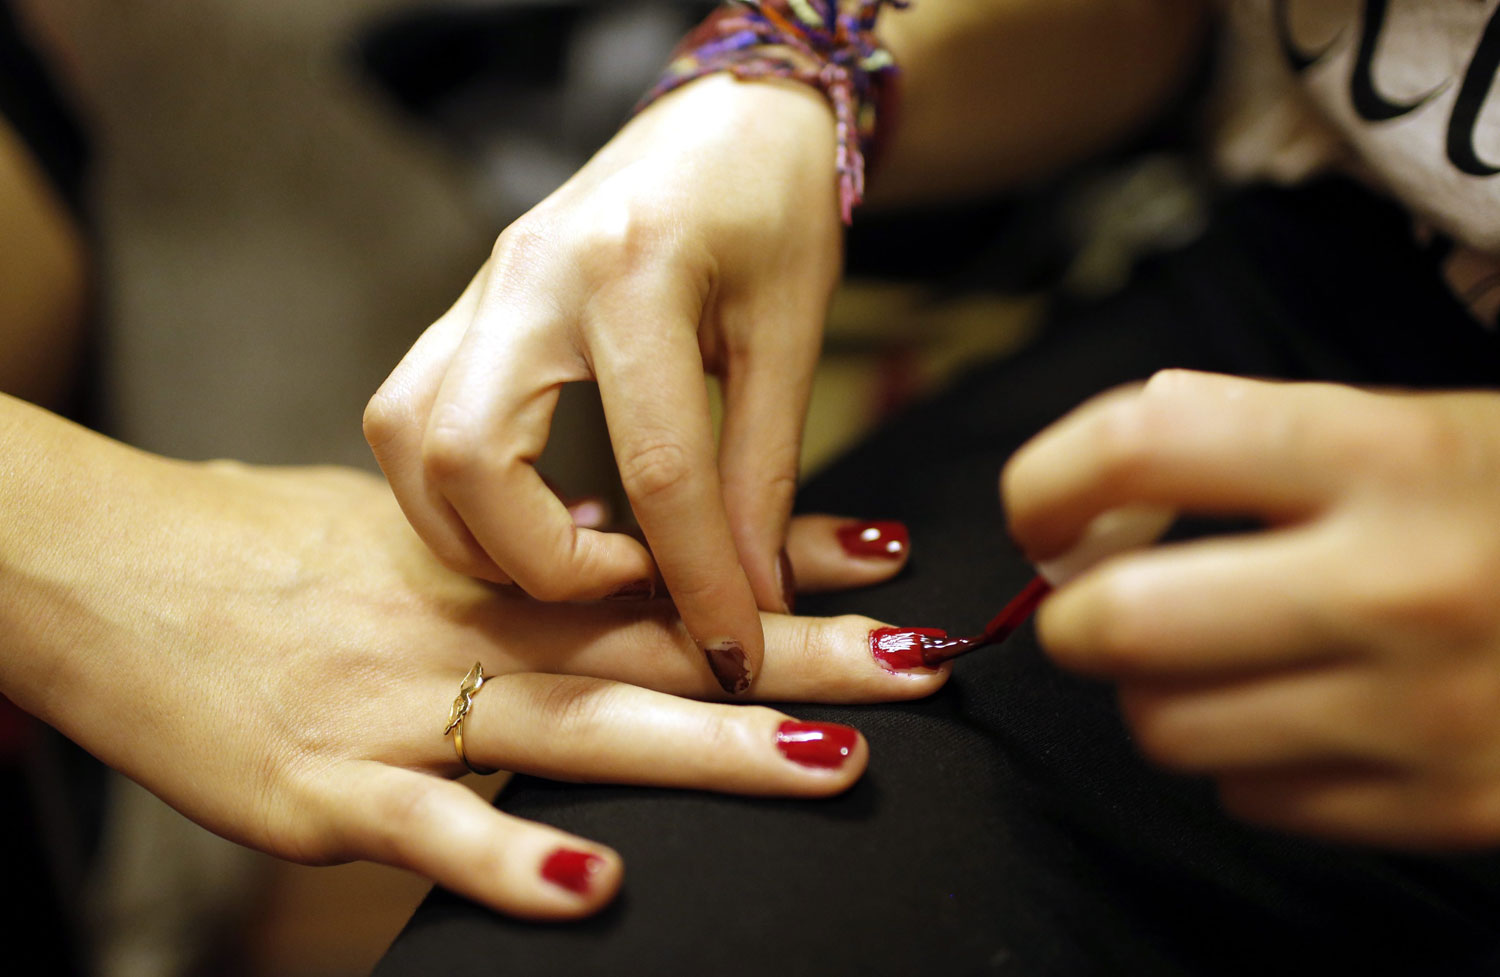 A contestant gets a manicure backstage in Istanbul on June 21, 2014. Of the 13 contestants, many participated despite fears of their sexuality being discovered by their families or employers.